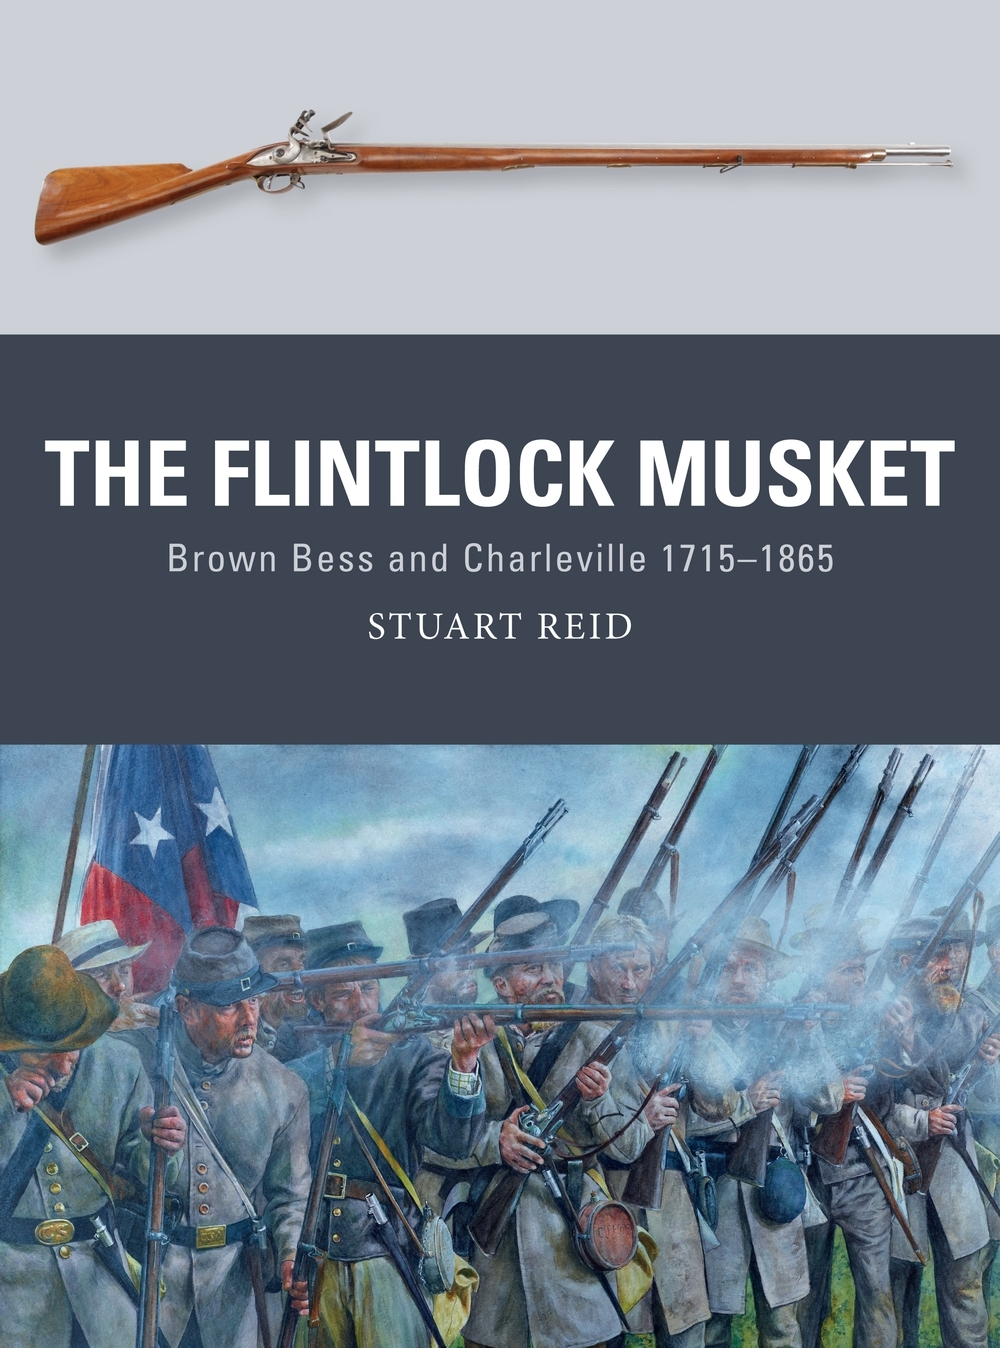 The Flintlock Musket cover